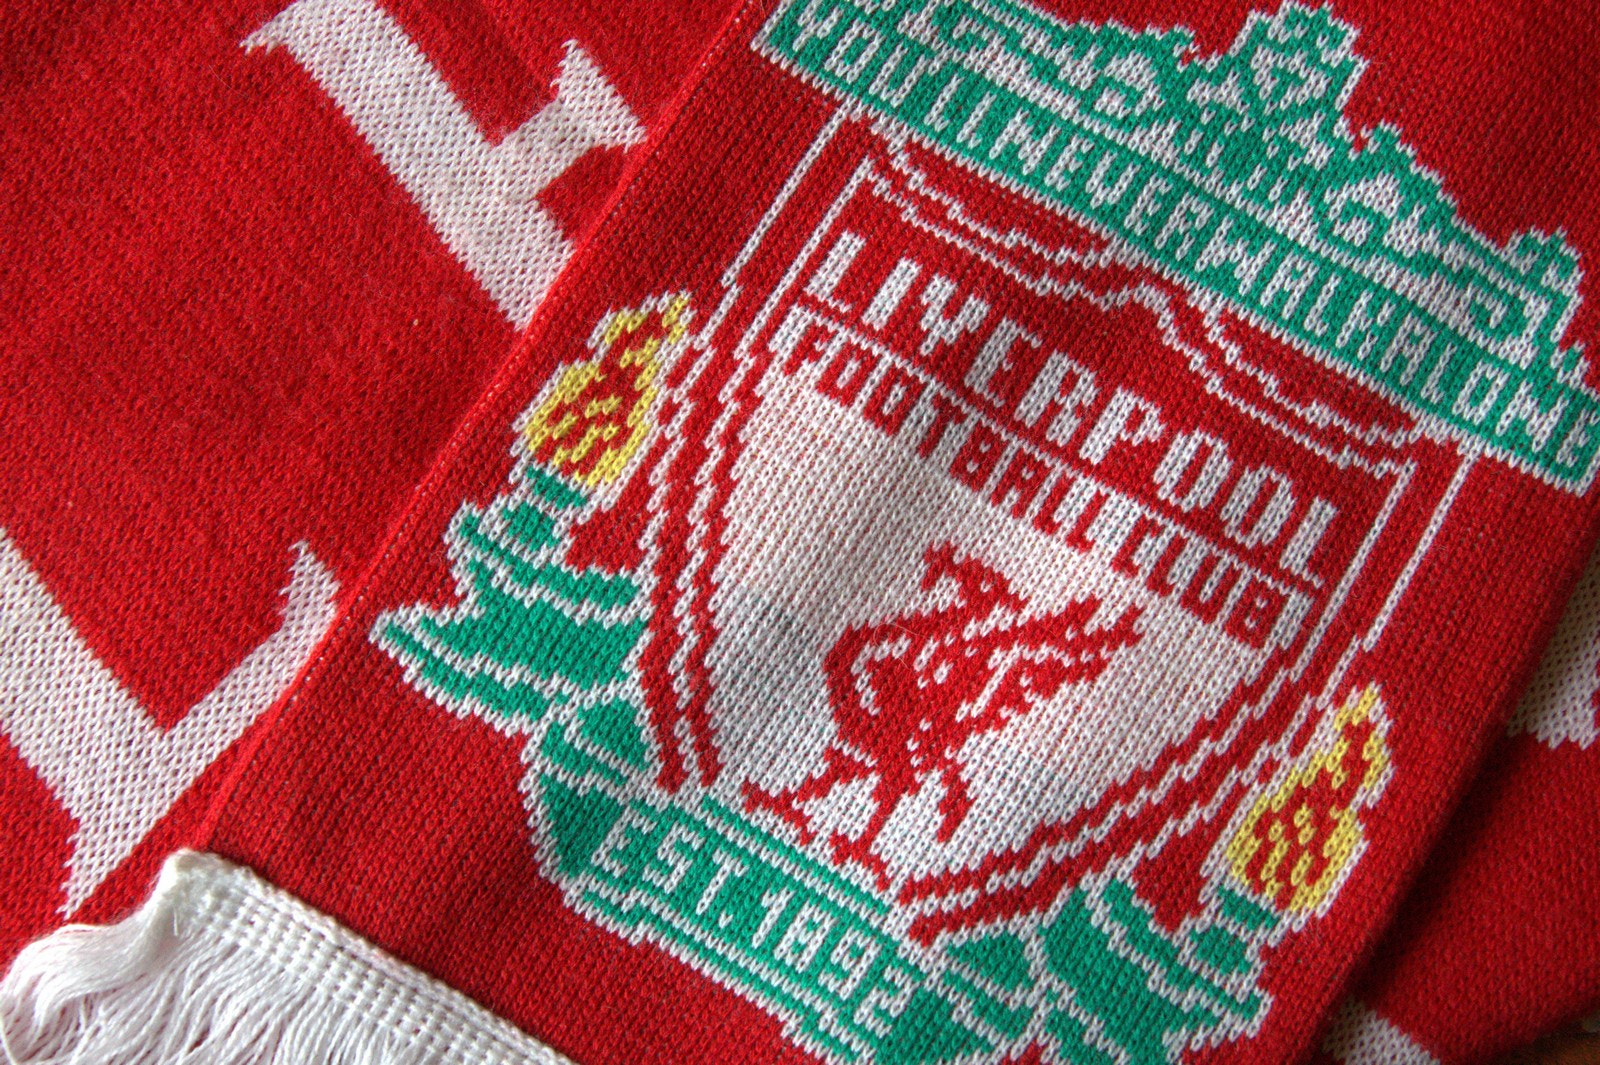 Photograph YNWA! Liverpool FC Starts Barclays Premier League 2011/12 by Lёha Horvat on 500px